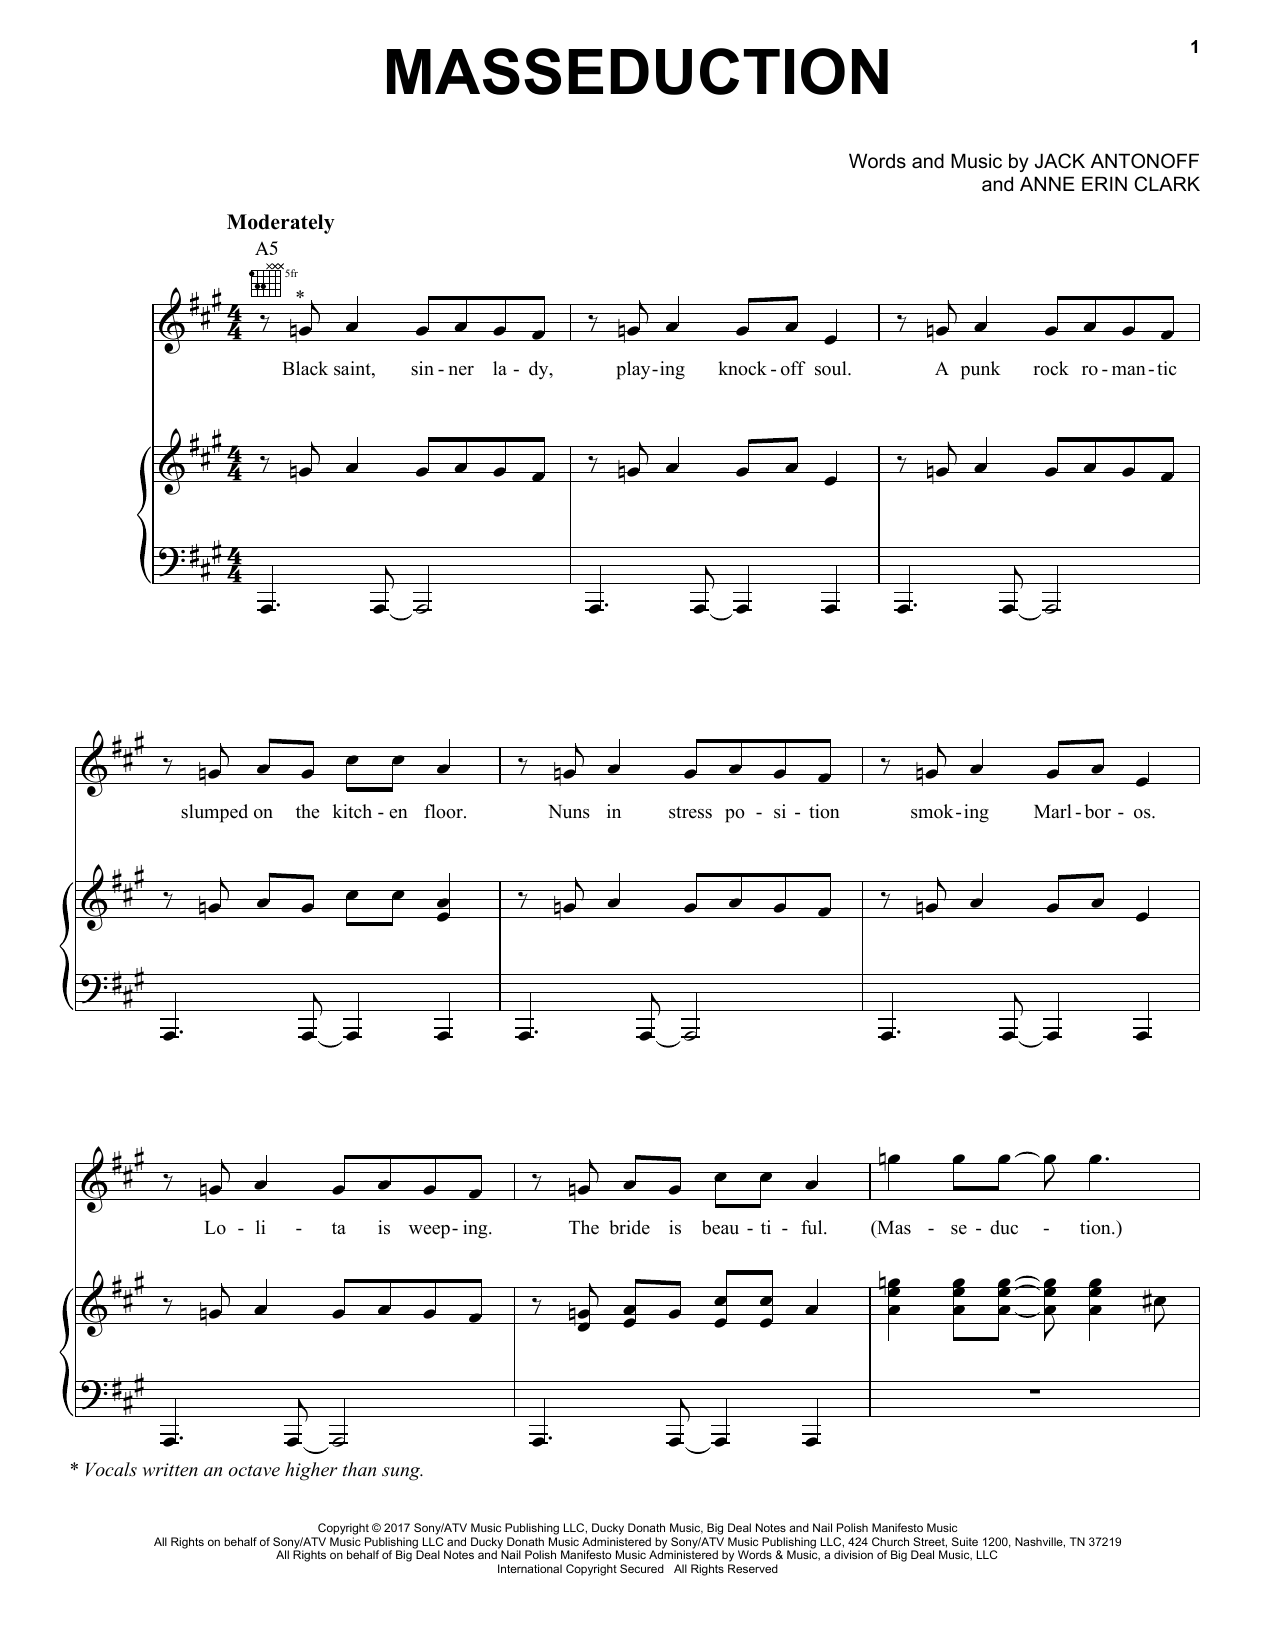 St. Vincent Masseduction sheet music notes and chords. Download Printable PDF.